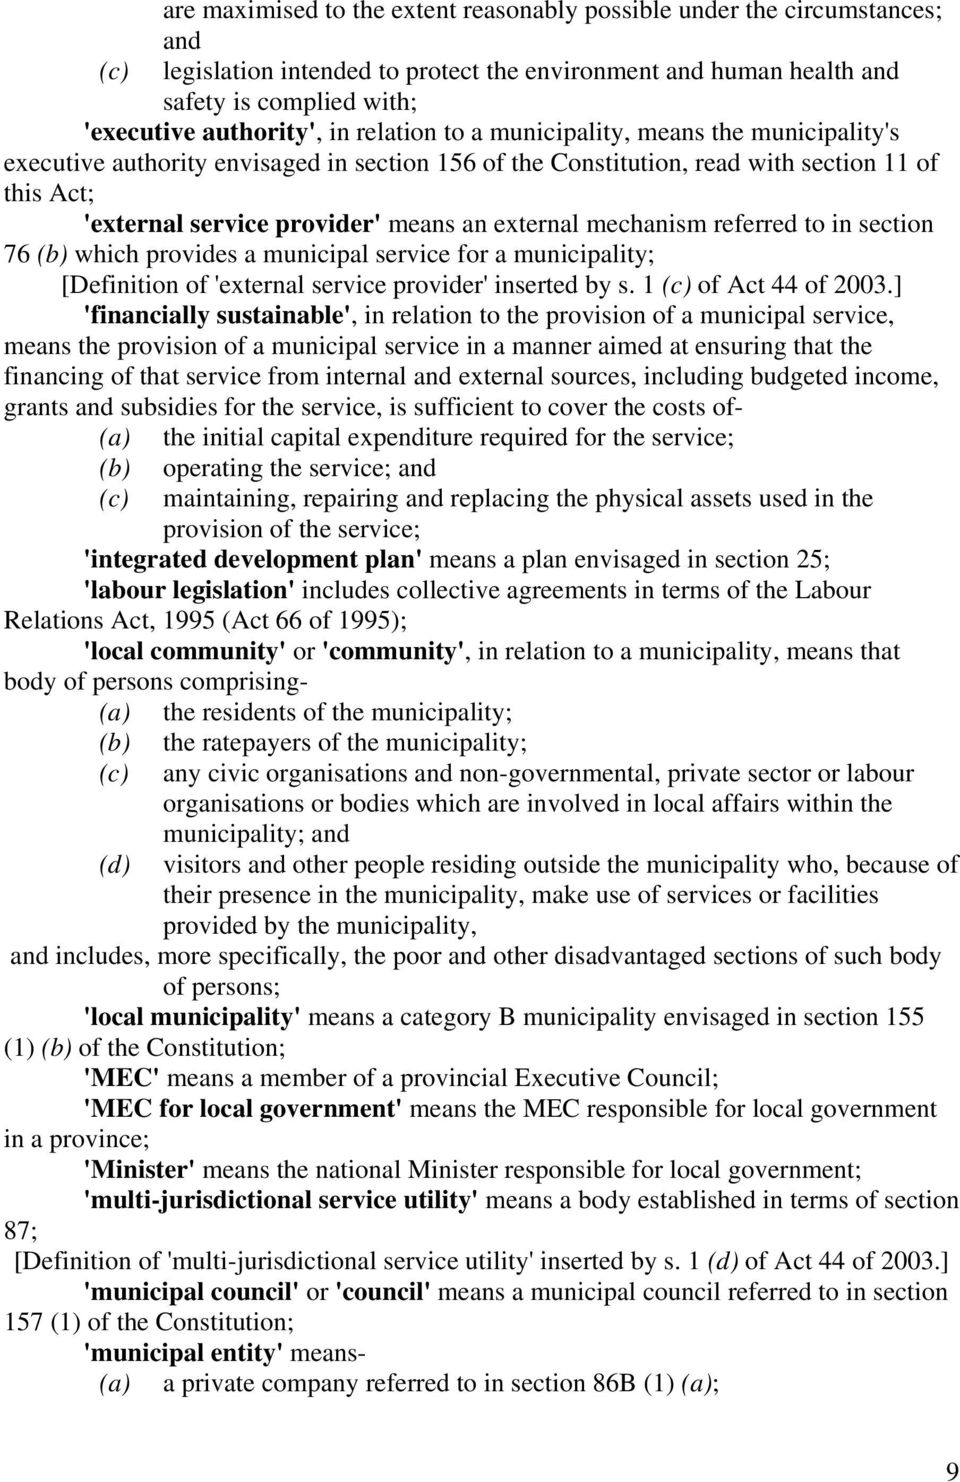 mechanism referred to in section 76 which provides a municipal service for a municipality; [Definition of 'external service provider' inserted by s. 1 of Act 44 of 2003.